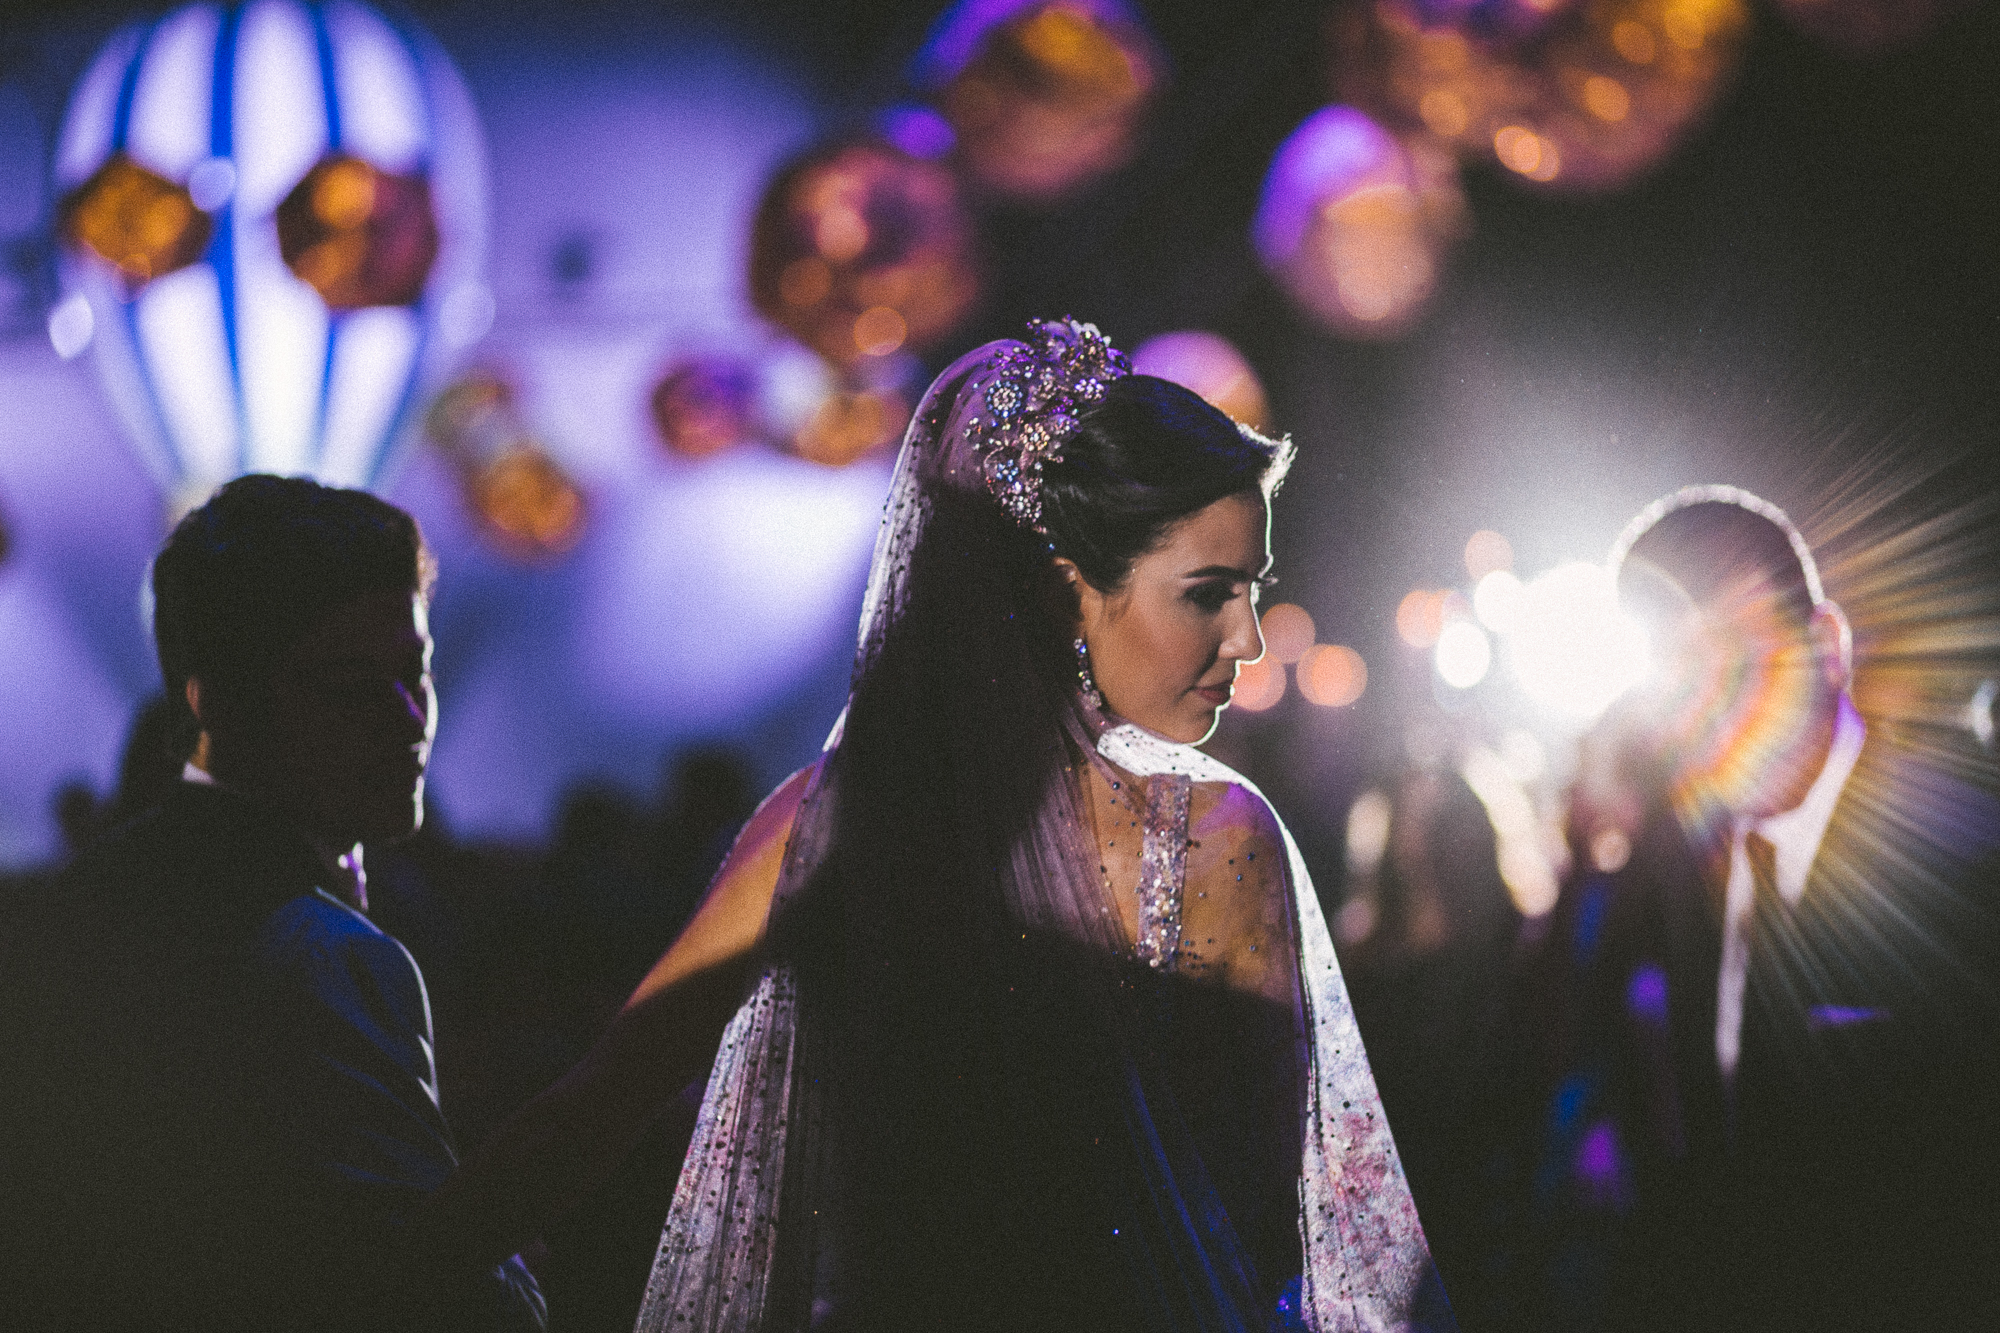 Elena Foresto Photographer Lebanese Wedding